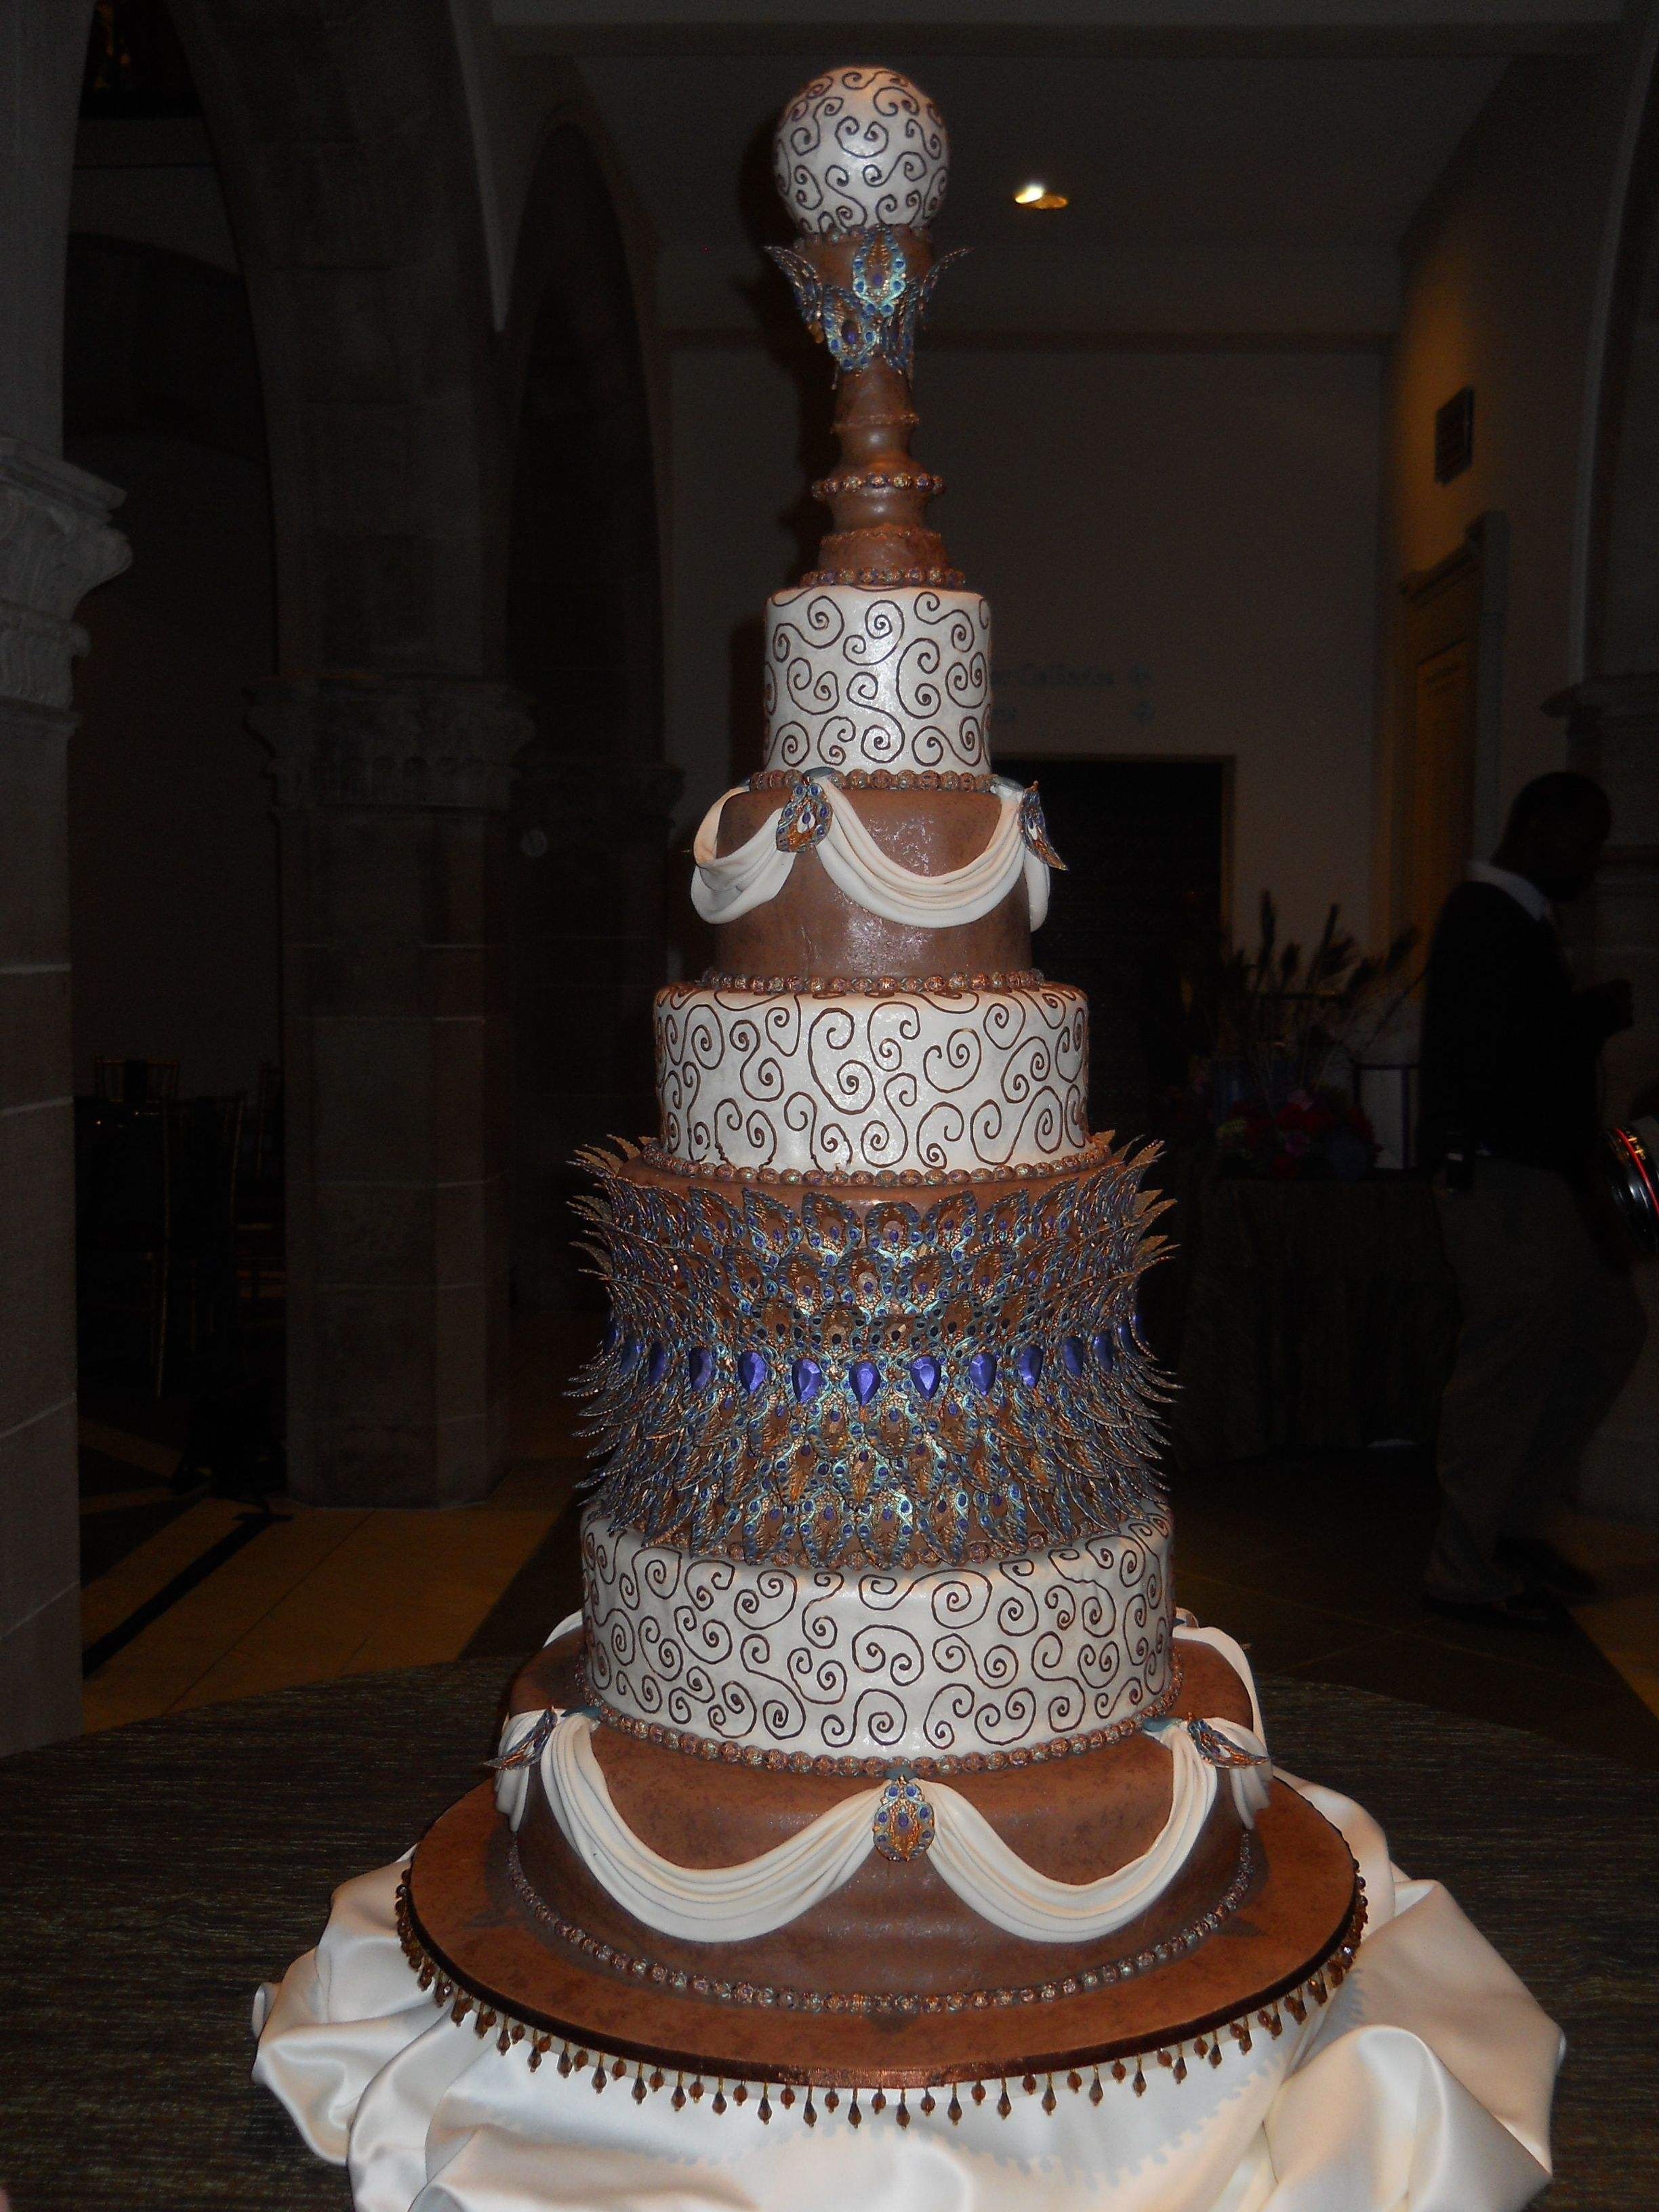 one of the cakes ive worked on